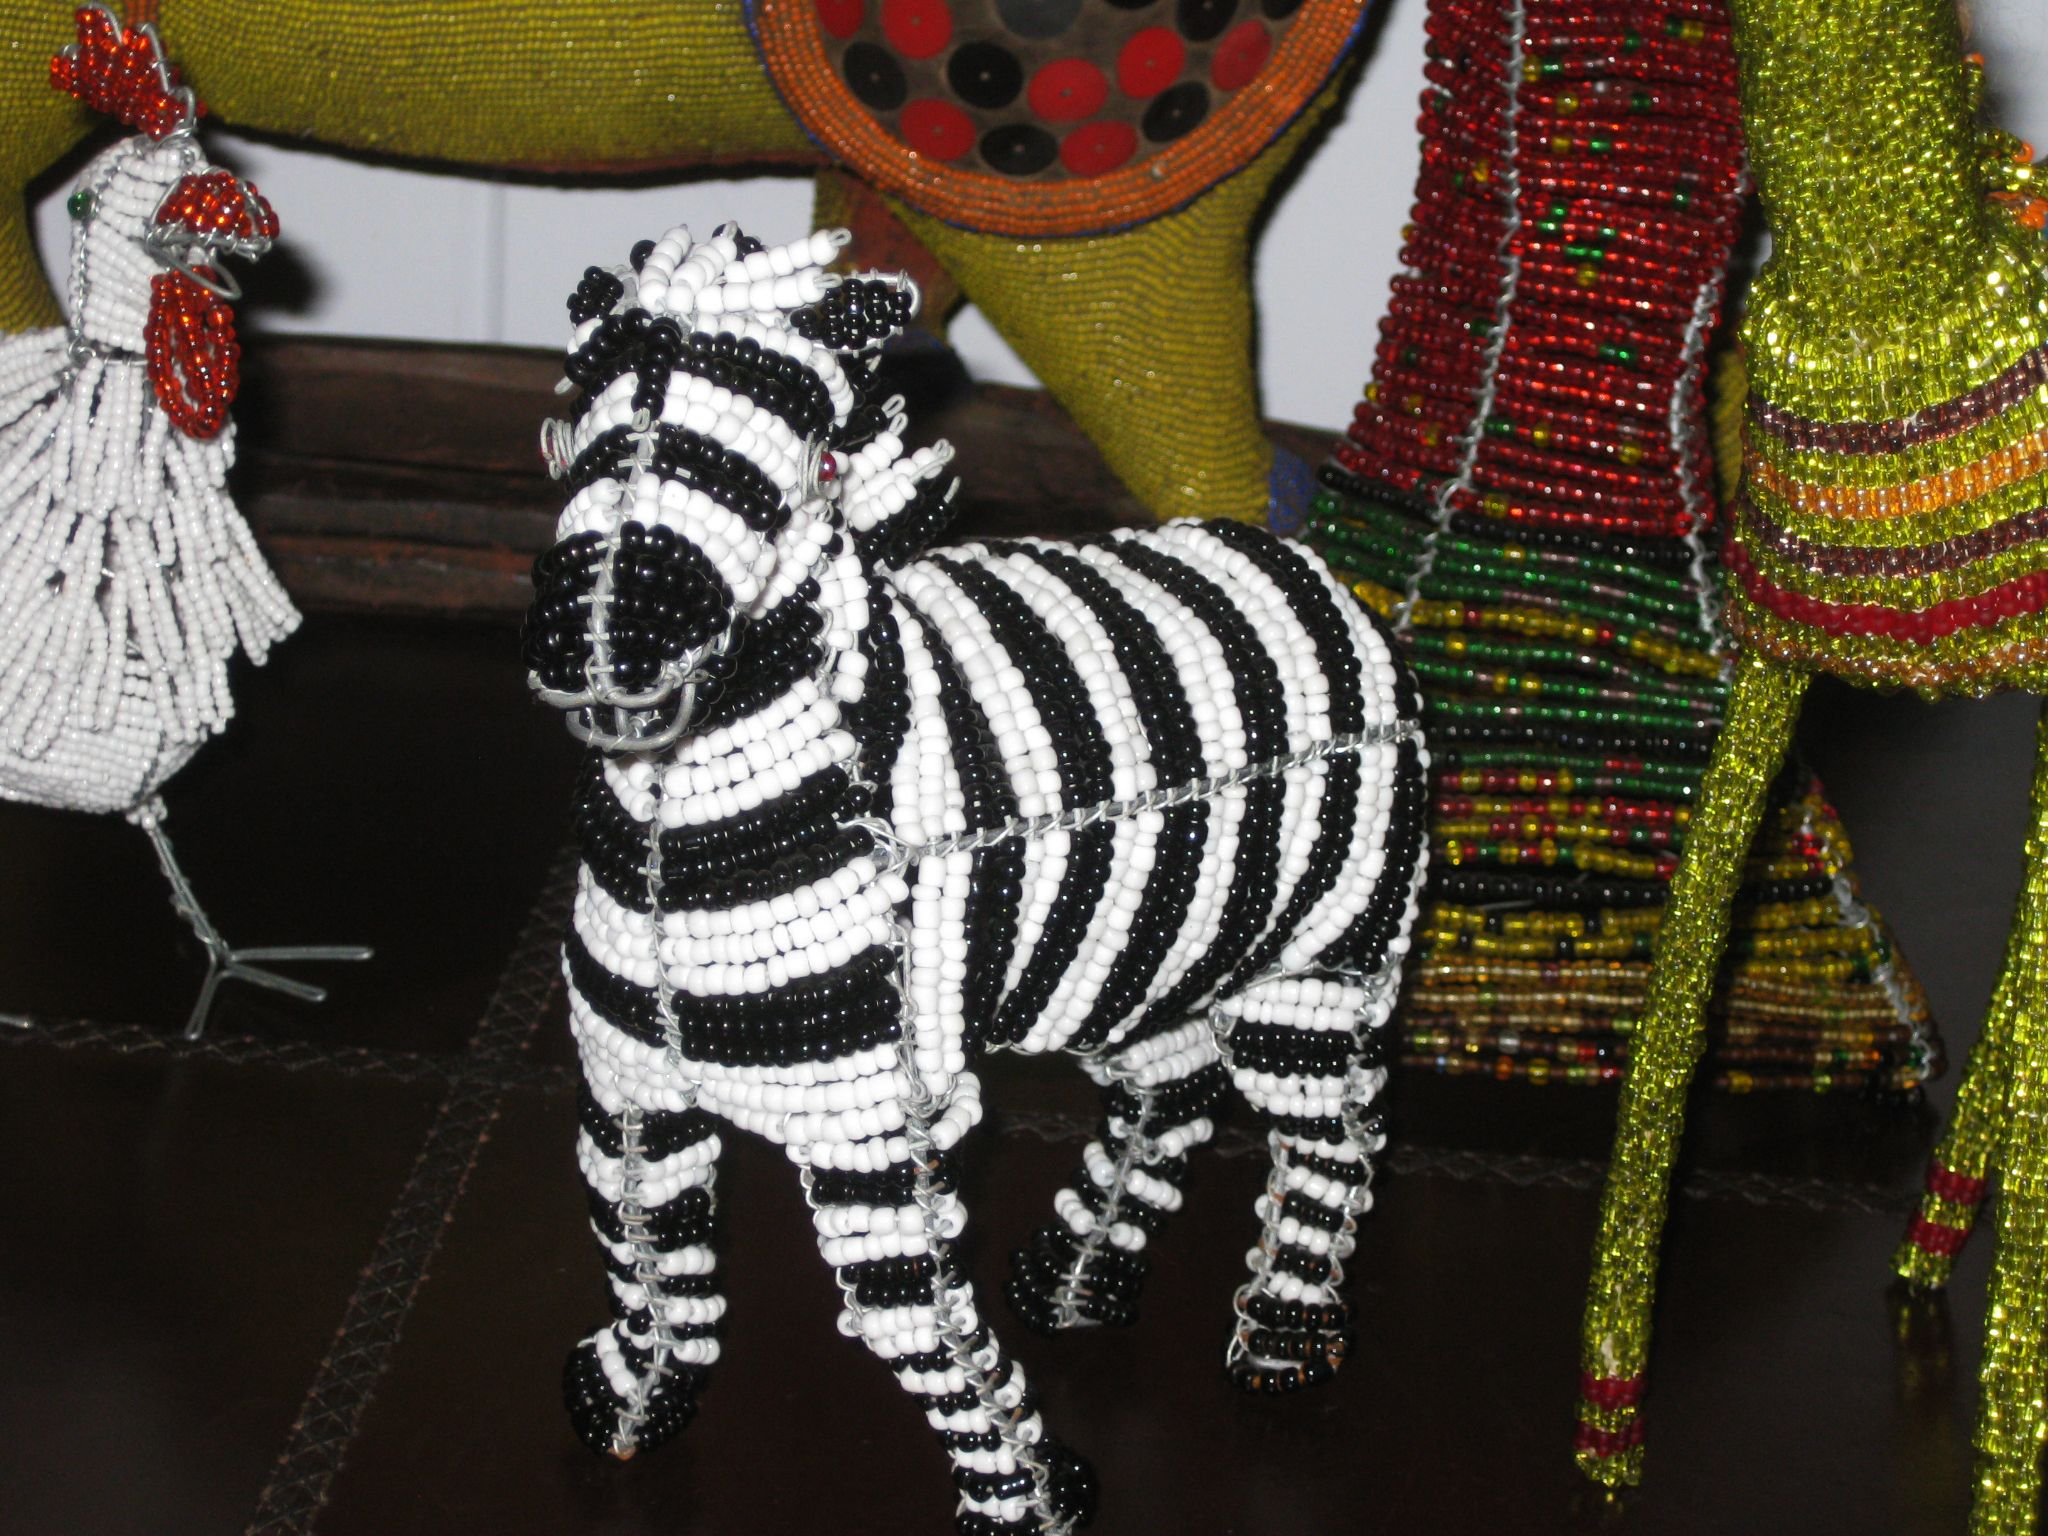 Zebra and other animals made from wire and beads | Rooms & Decor ...